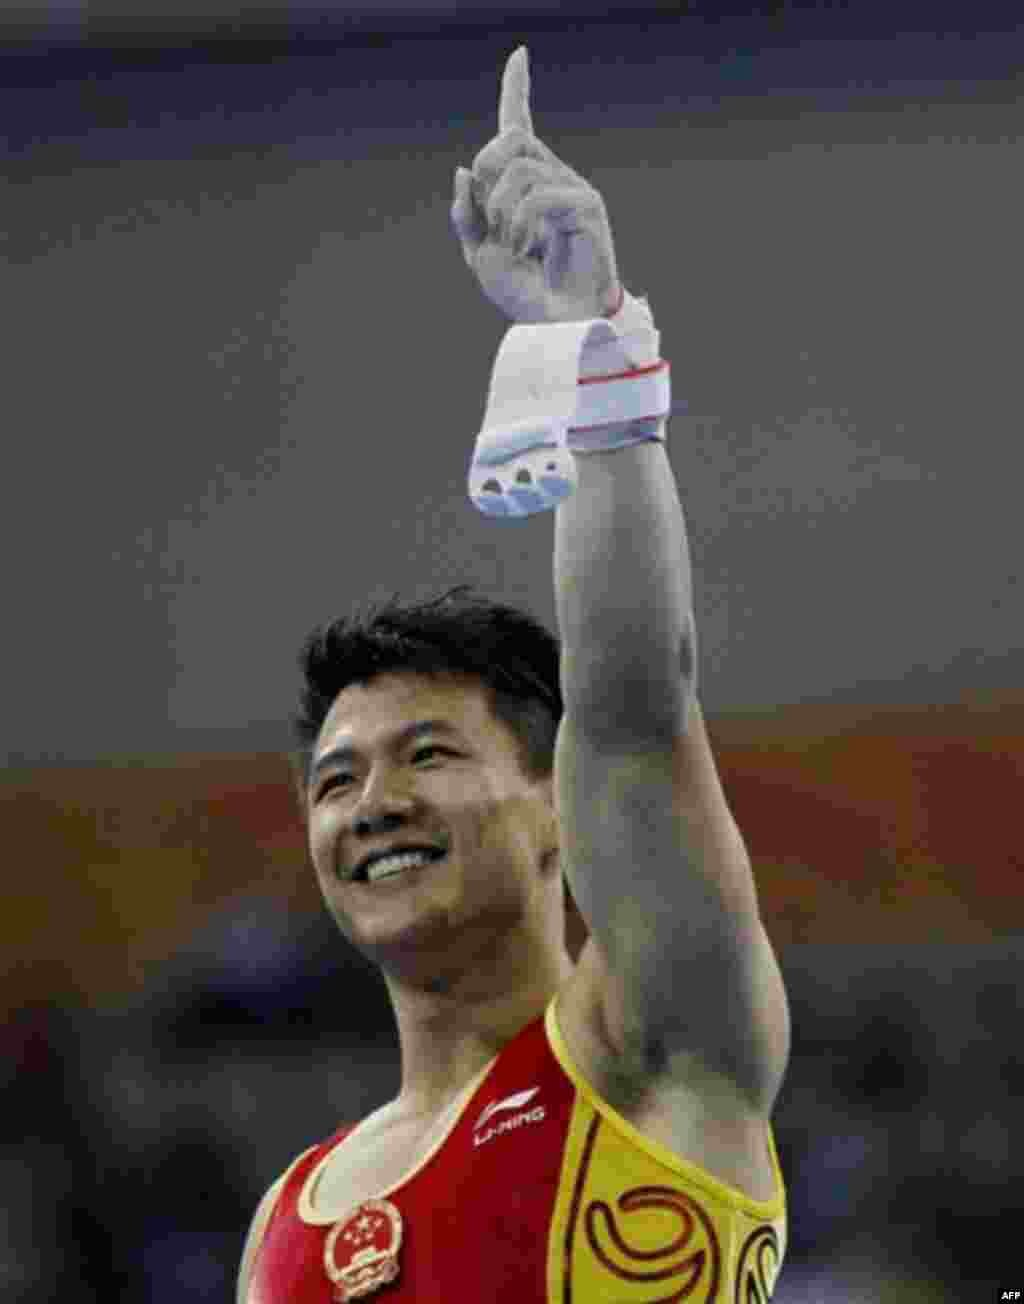 China's gymnast Chen Yibing, gestures after completing his routine on the men's rings at the 16th Asian Games in Guangzhou, China, Tuesday, Nov. 16, 2010. Chen won the gold medal. (AP Photo/Ng Han Guan)